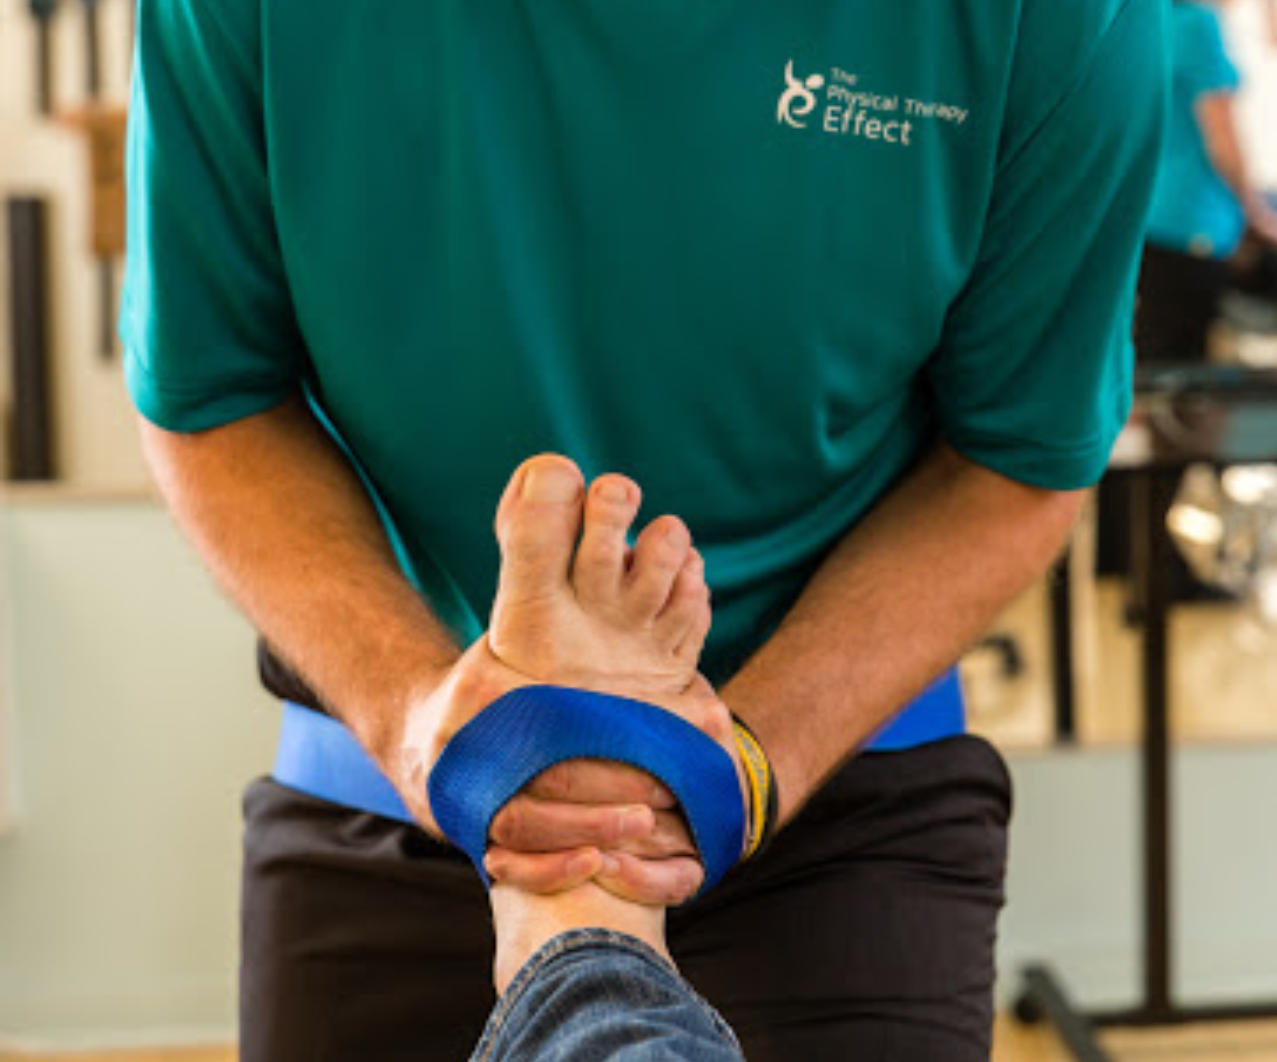 Doctor of physical therapy working on patient's foot